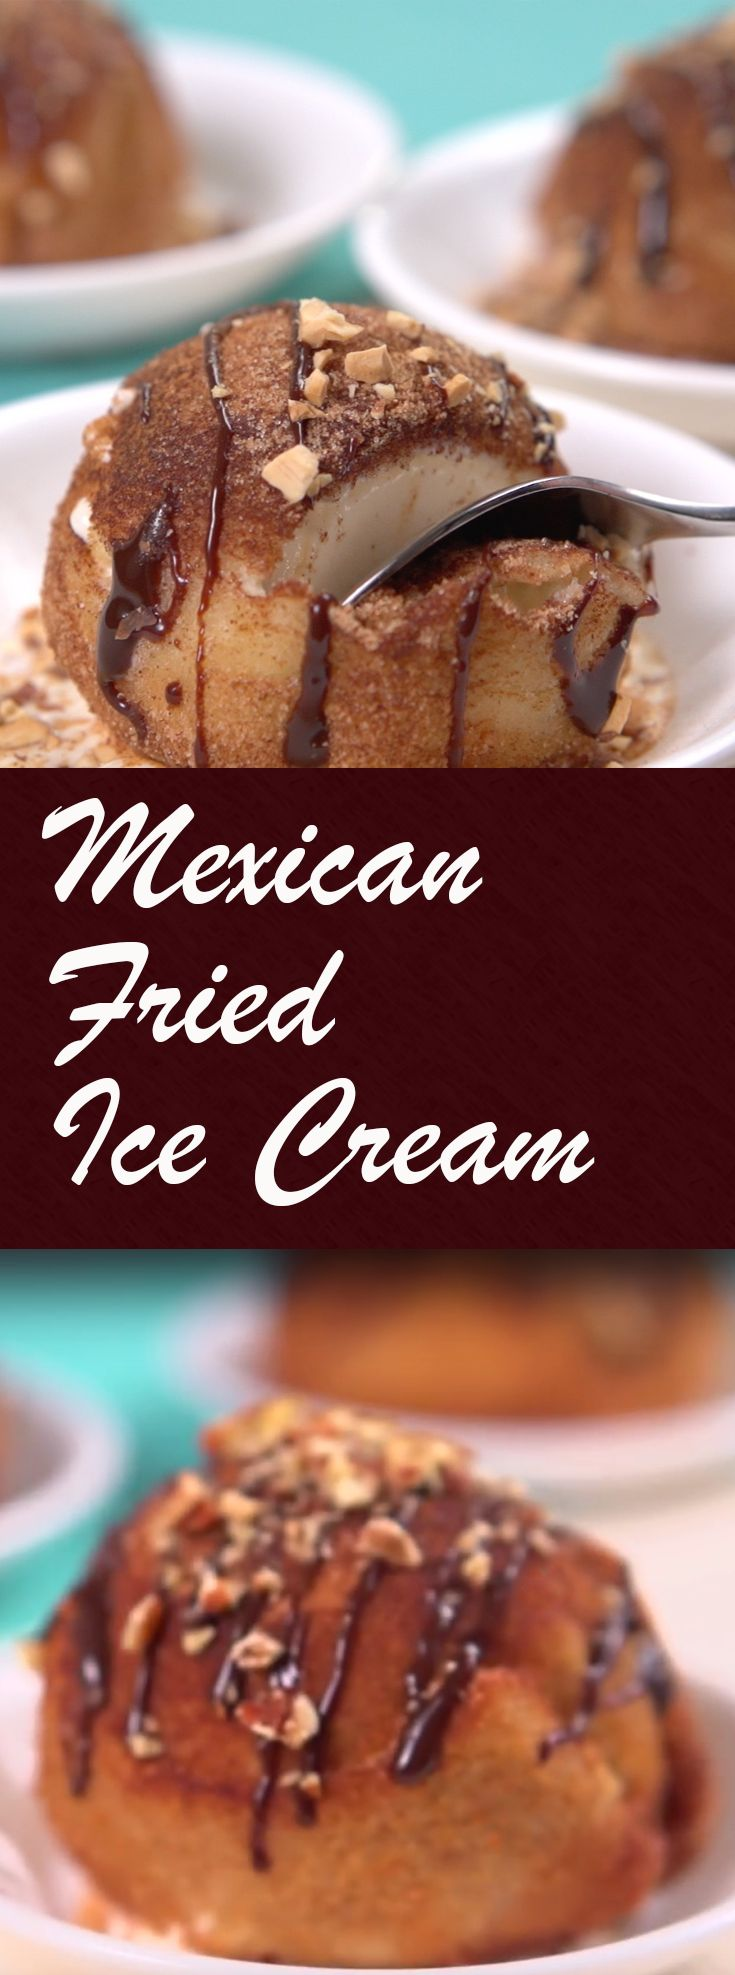 Mexican Fried Ice Cream | Ever tried making fried ice cream? Here's a version with a cinnamon Mexican twist. The final result is sweet and spicy, creamy and crispy, and ridiculously delicious. Check it out! Click for the video and recipe. #sweettreats #desserts